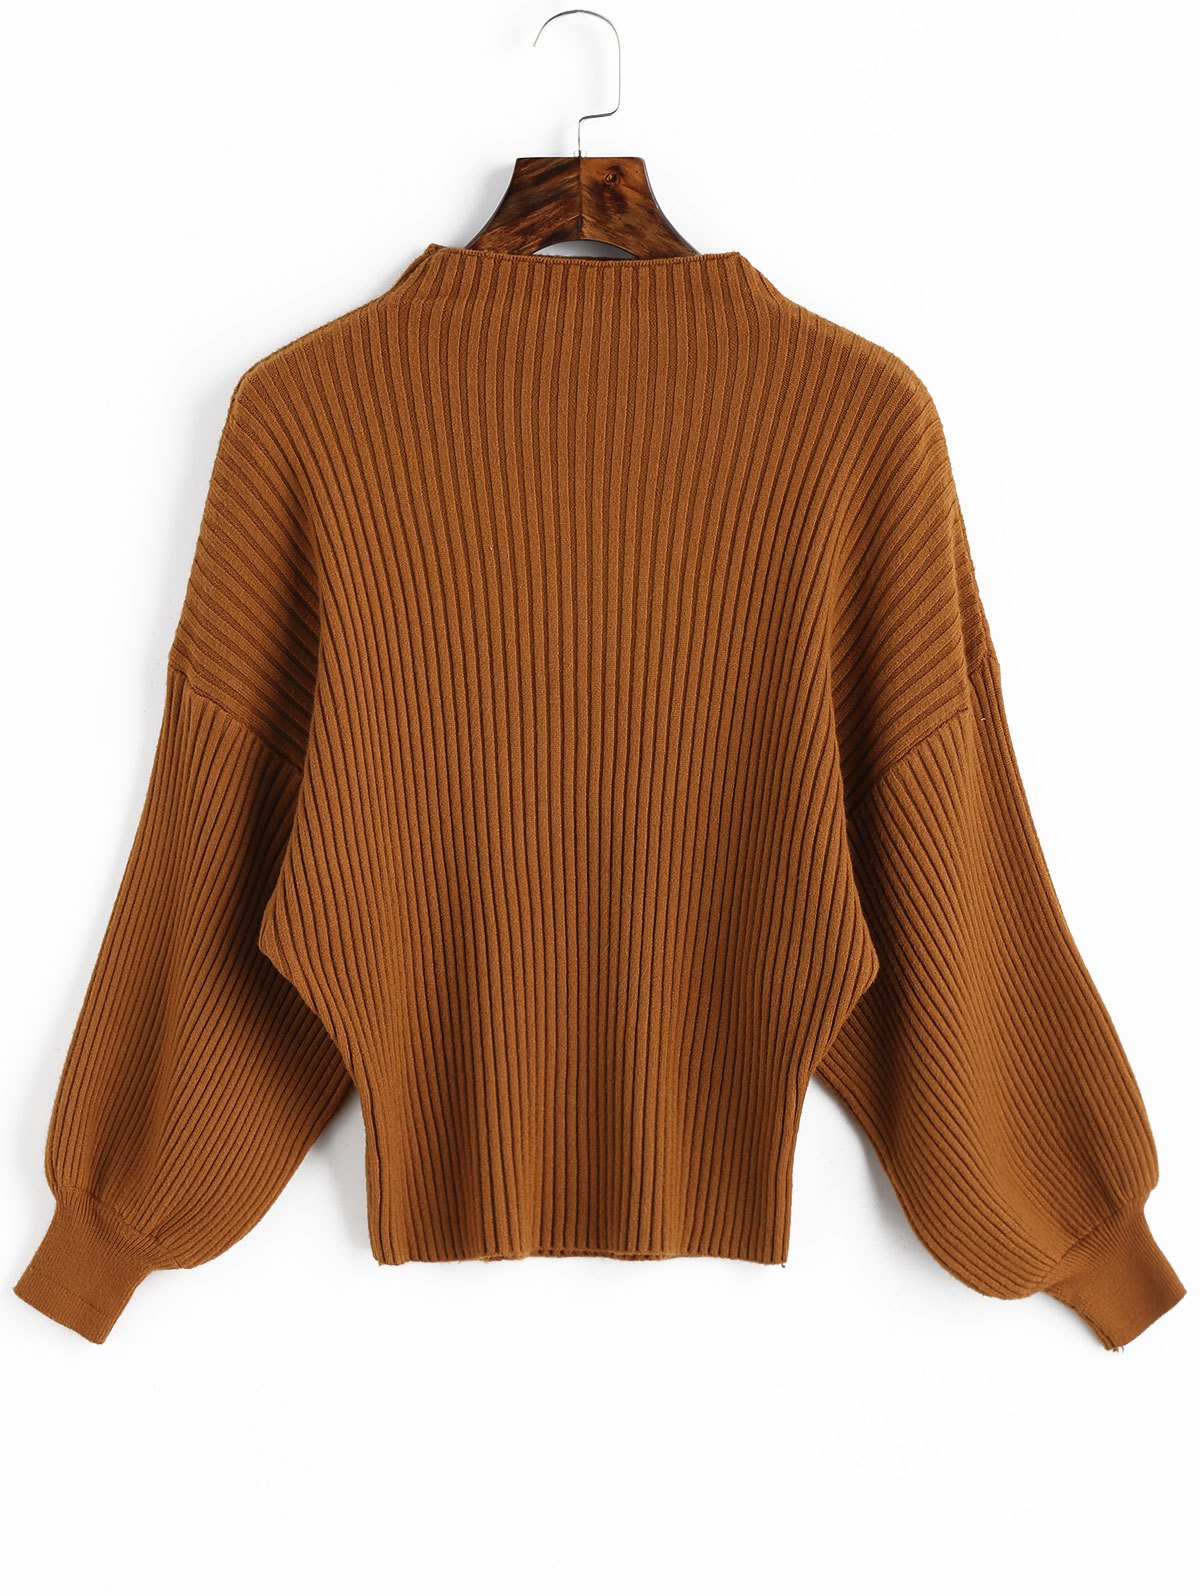 Ribbed Mock Neck Lantern Sleeve Sweater - LIGHT BROWN ONE SIZE